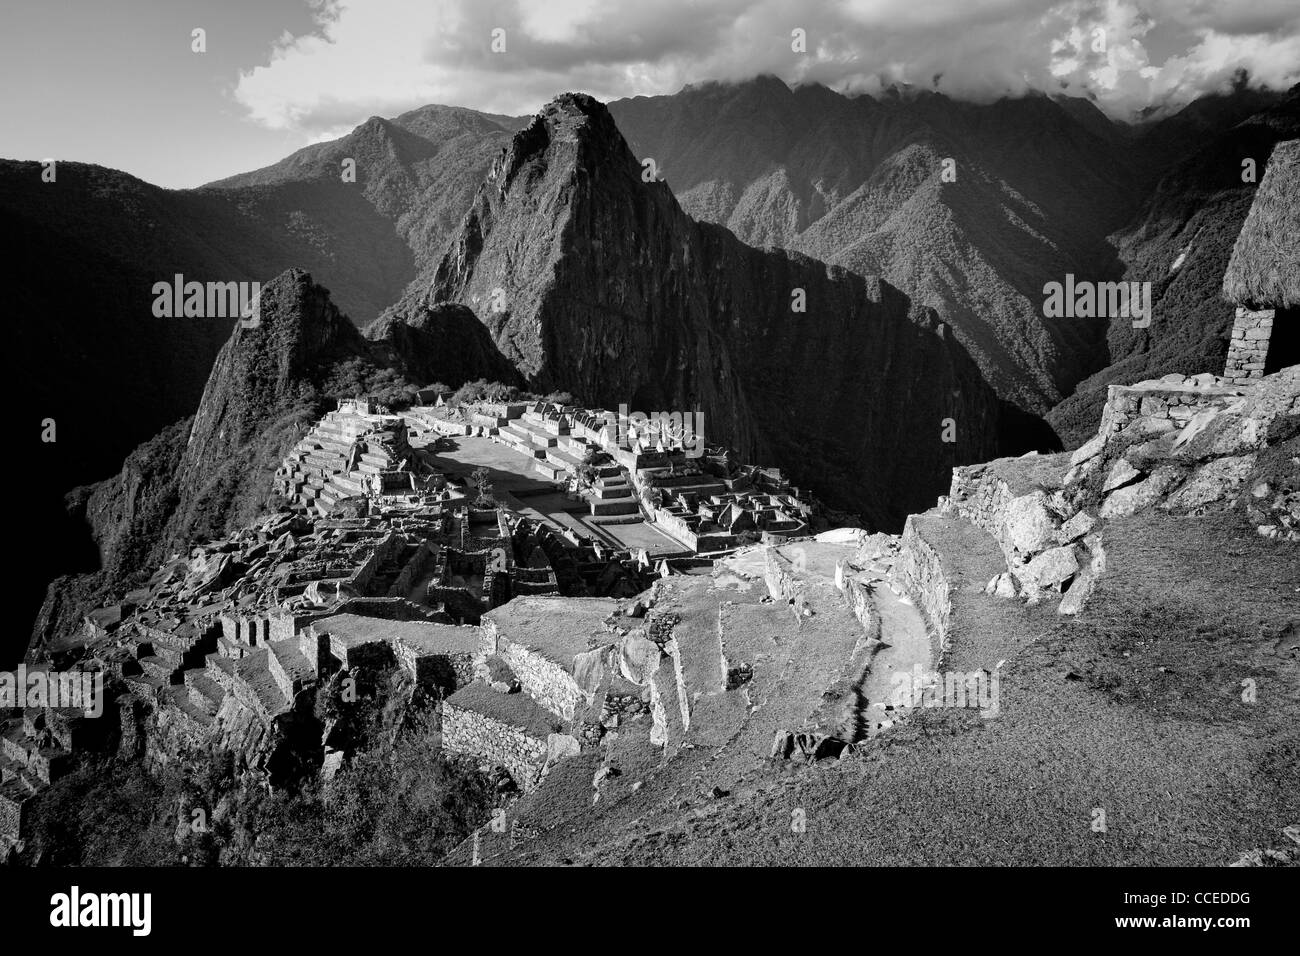 The ancient city of Machu Picchu hidden in the Andes mountains, Peru - Stock Image